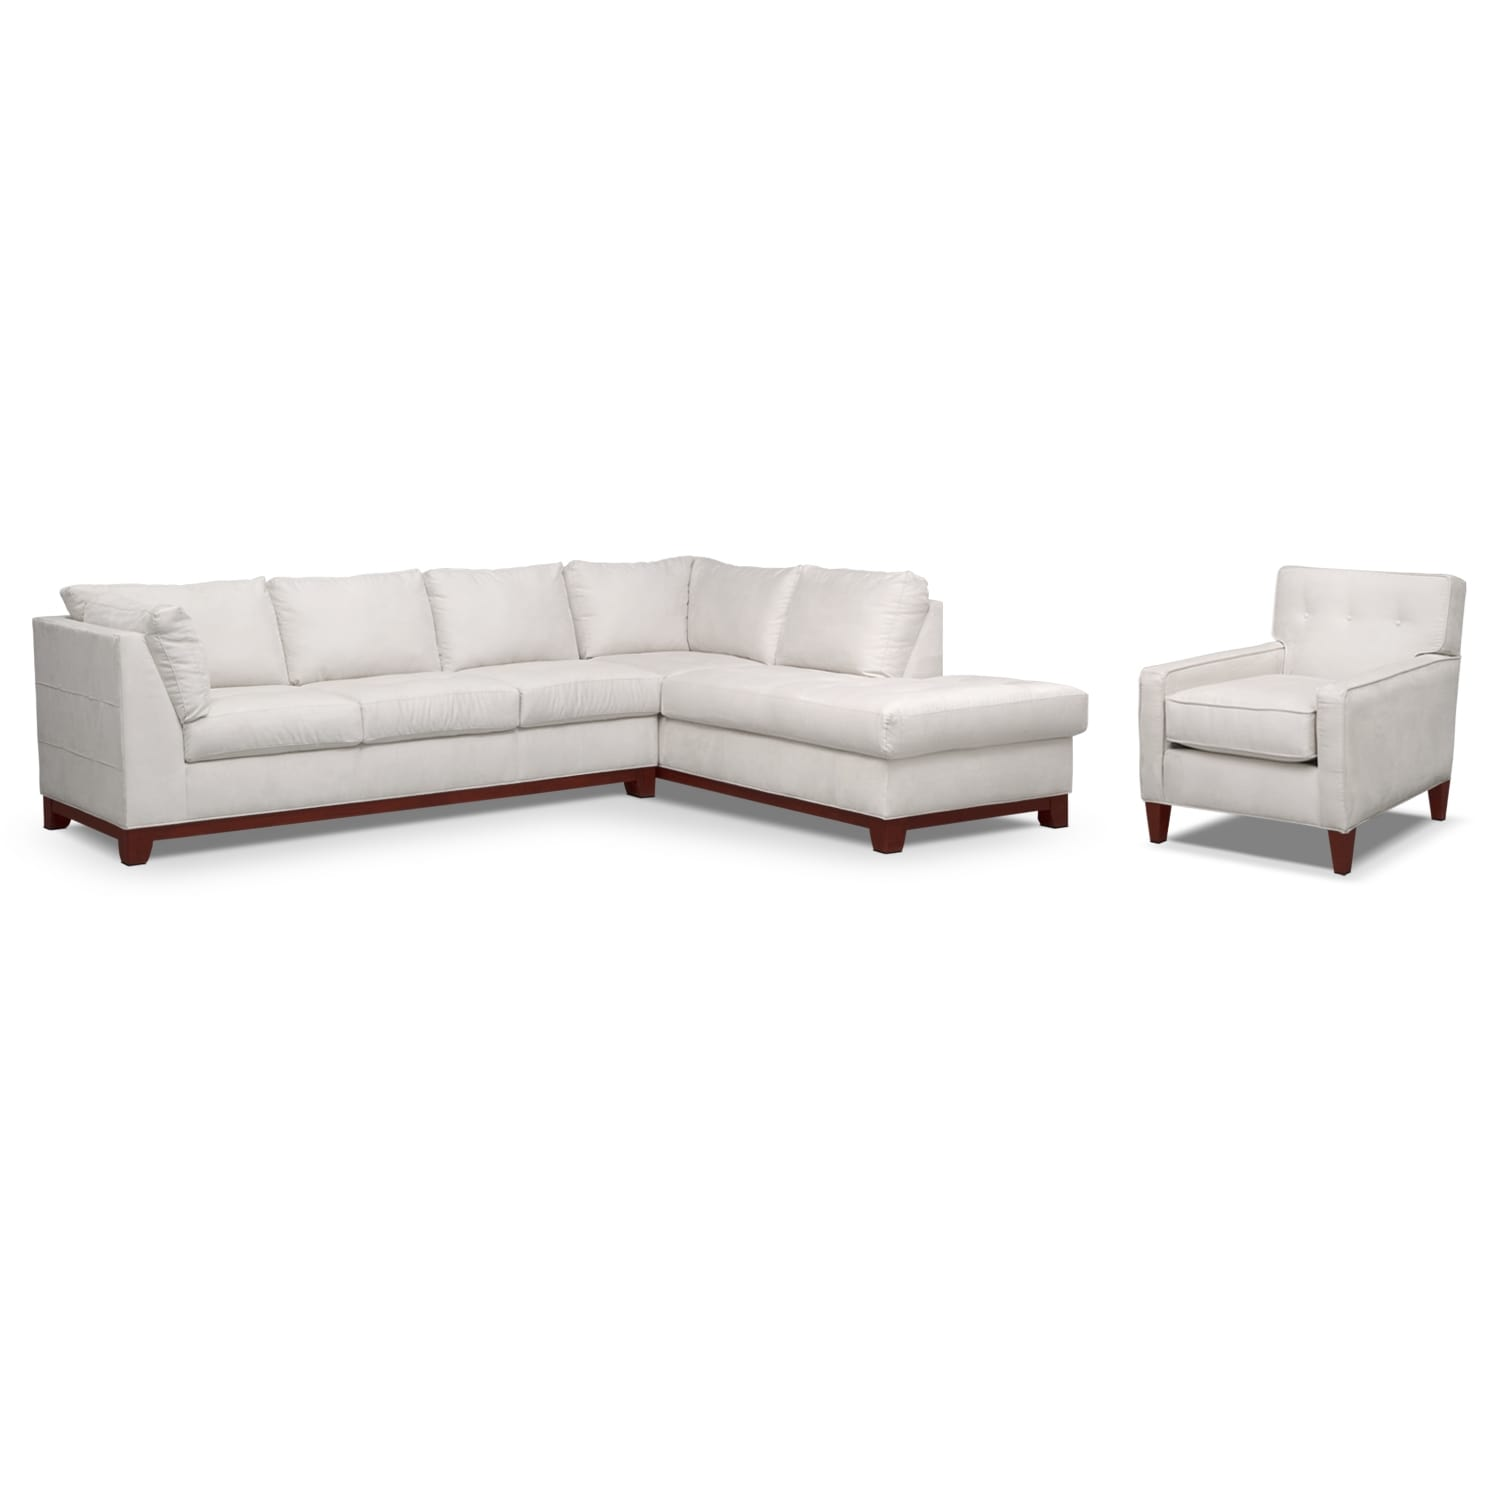 Living Room Furniture - Soho 2-Piece Sectional with Right-Facing Chaise and Chair - Cement